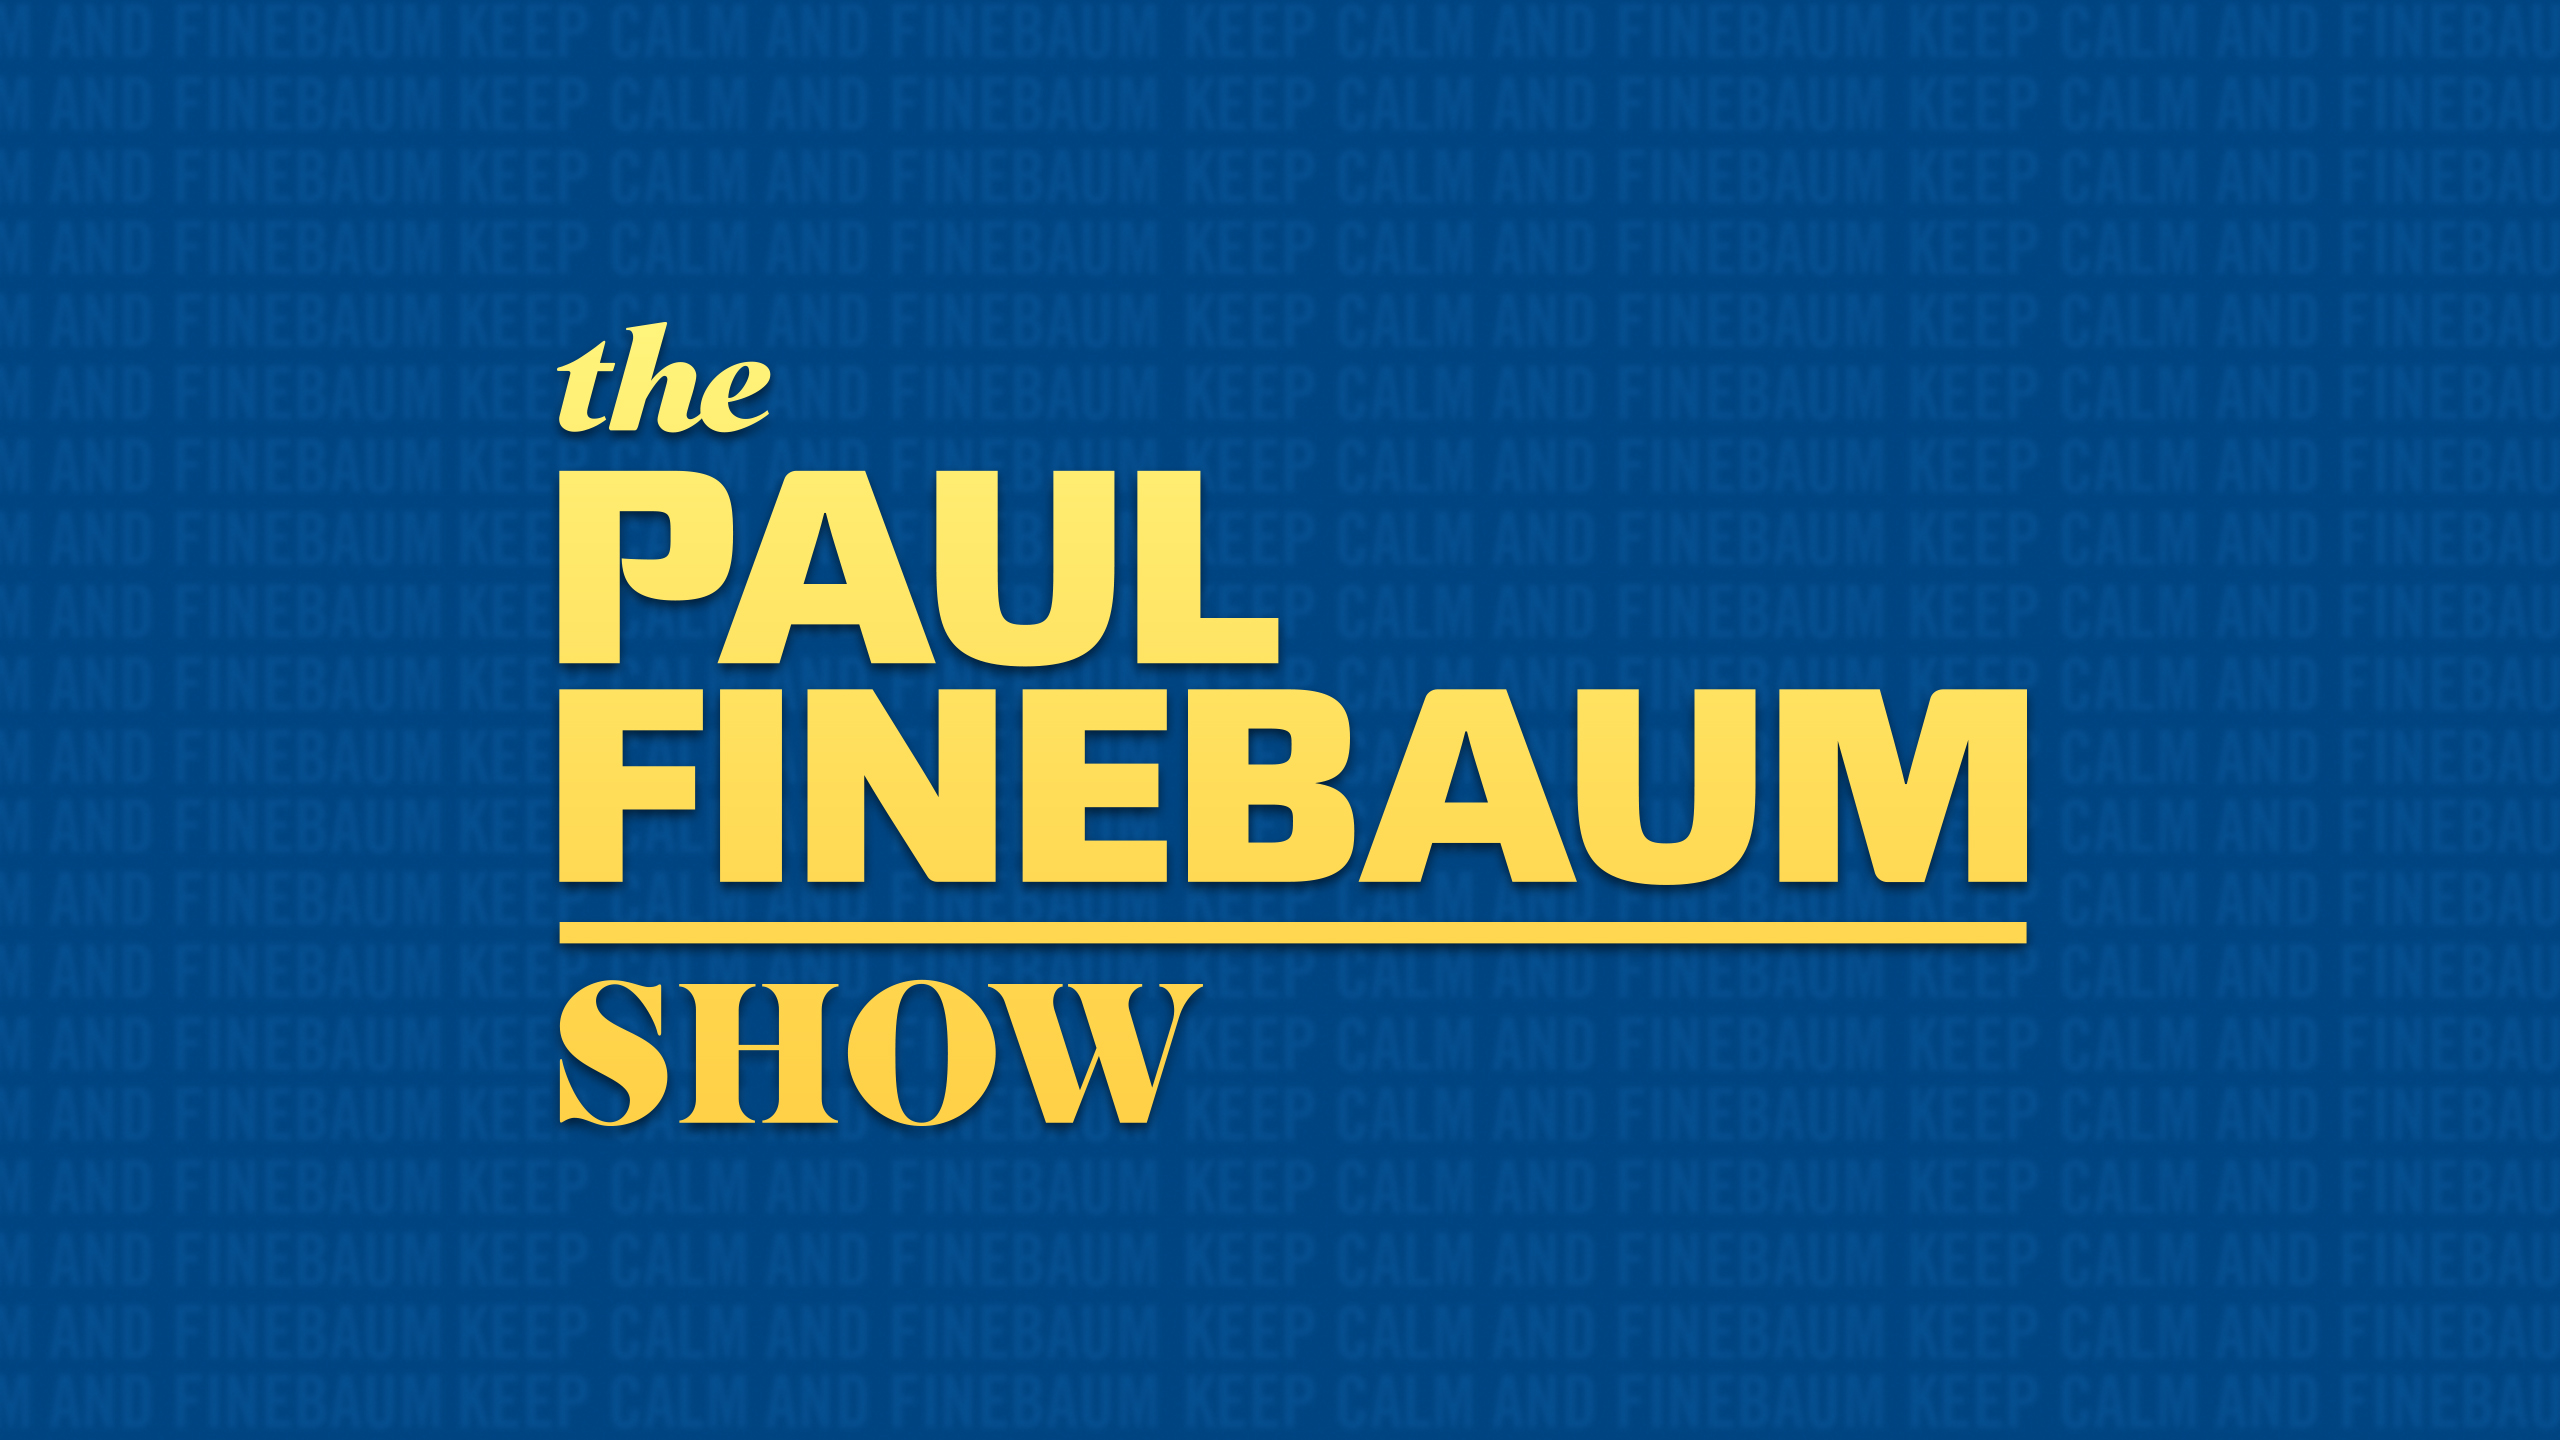 Thu, 2/21 - The Paul Finebaum Show